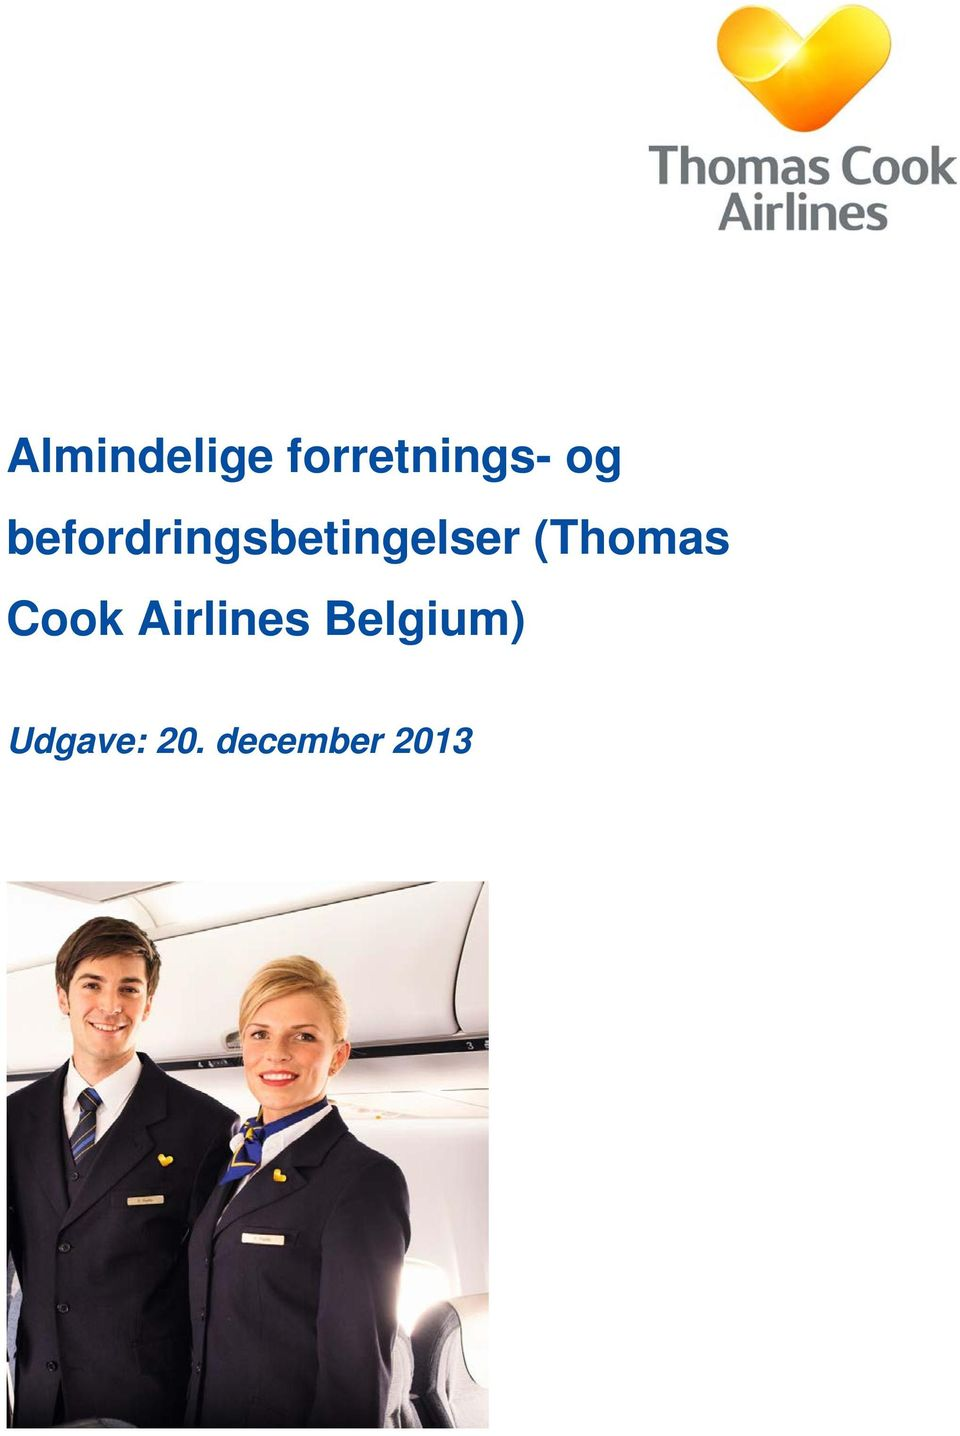 (Thomas Cook Airlines